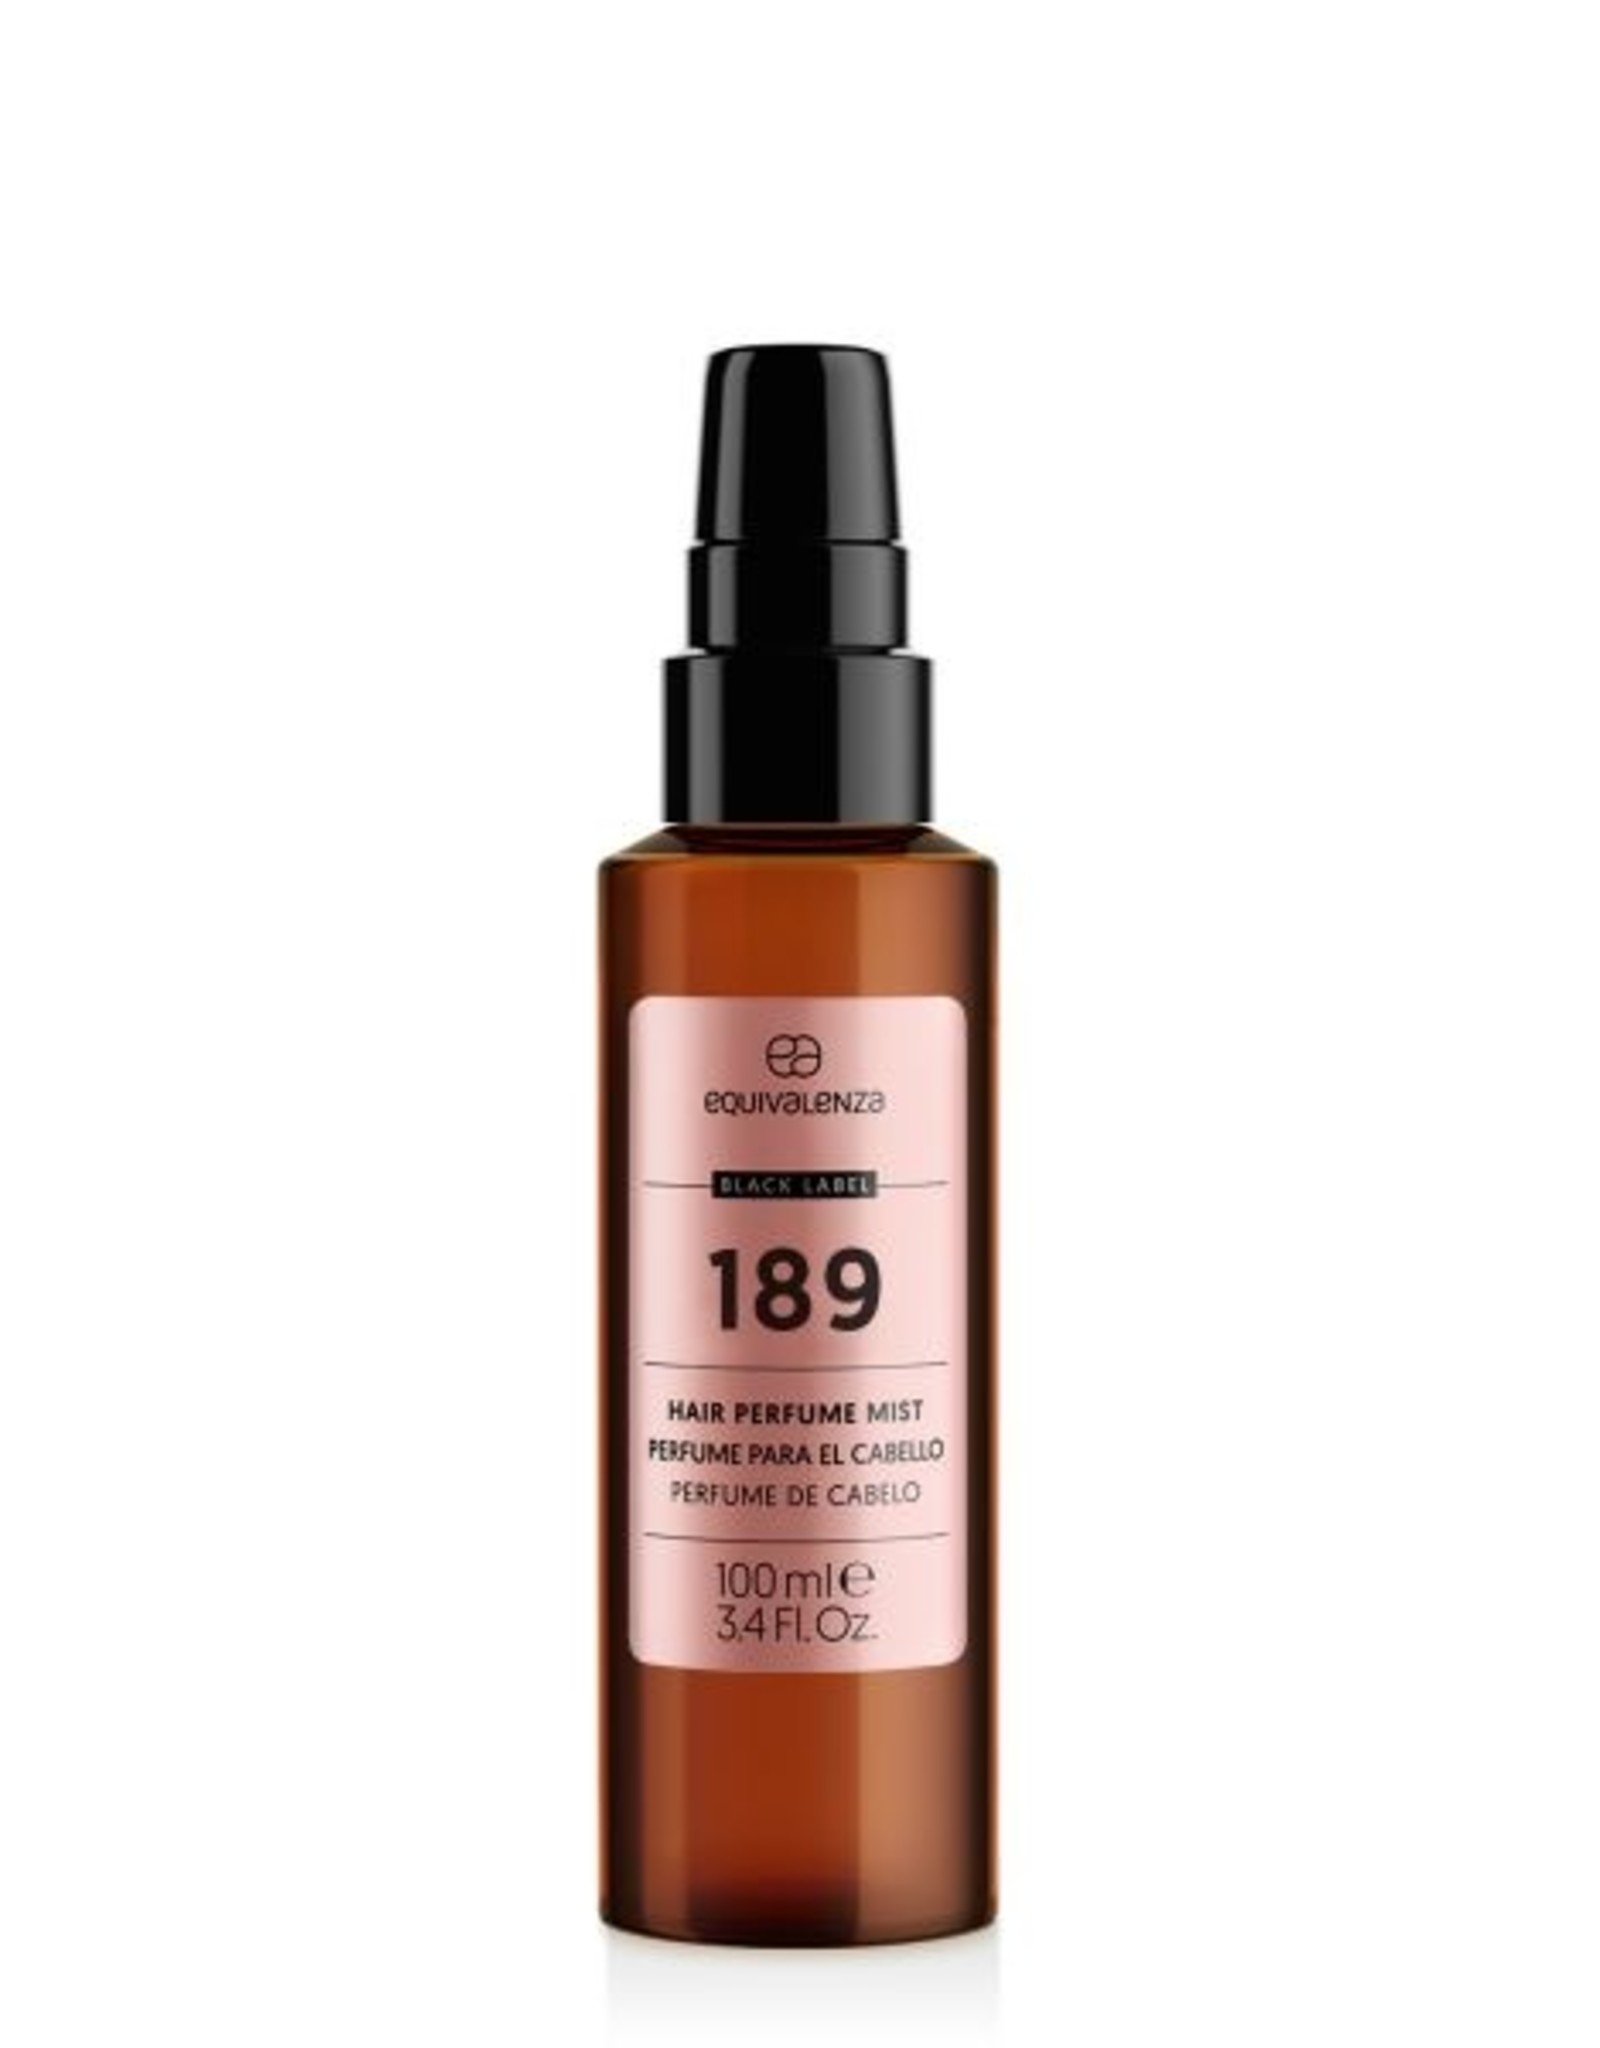 Equivalenza Black Label Hair Perfume Mist 189